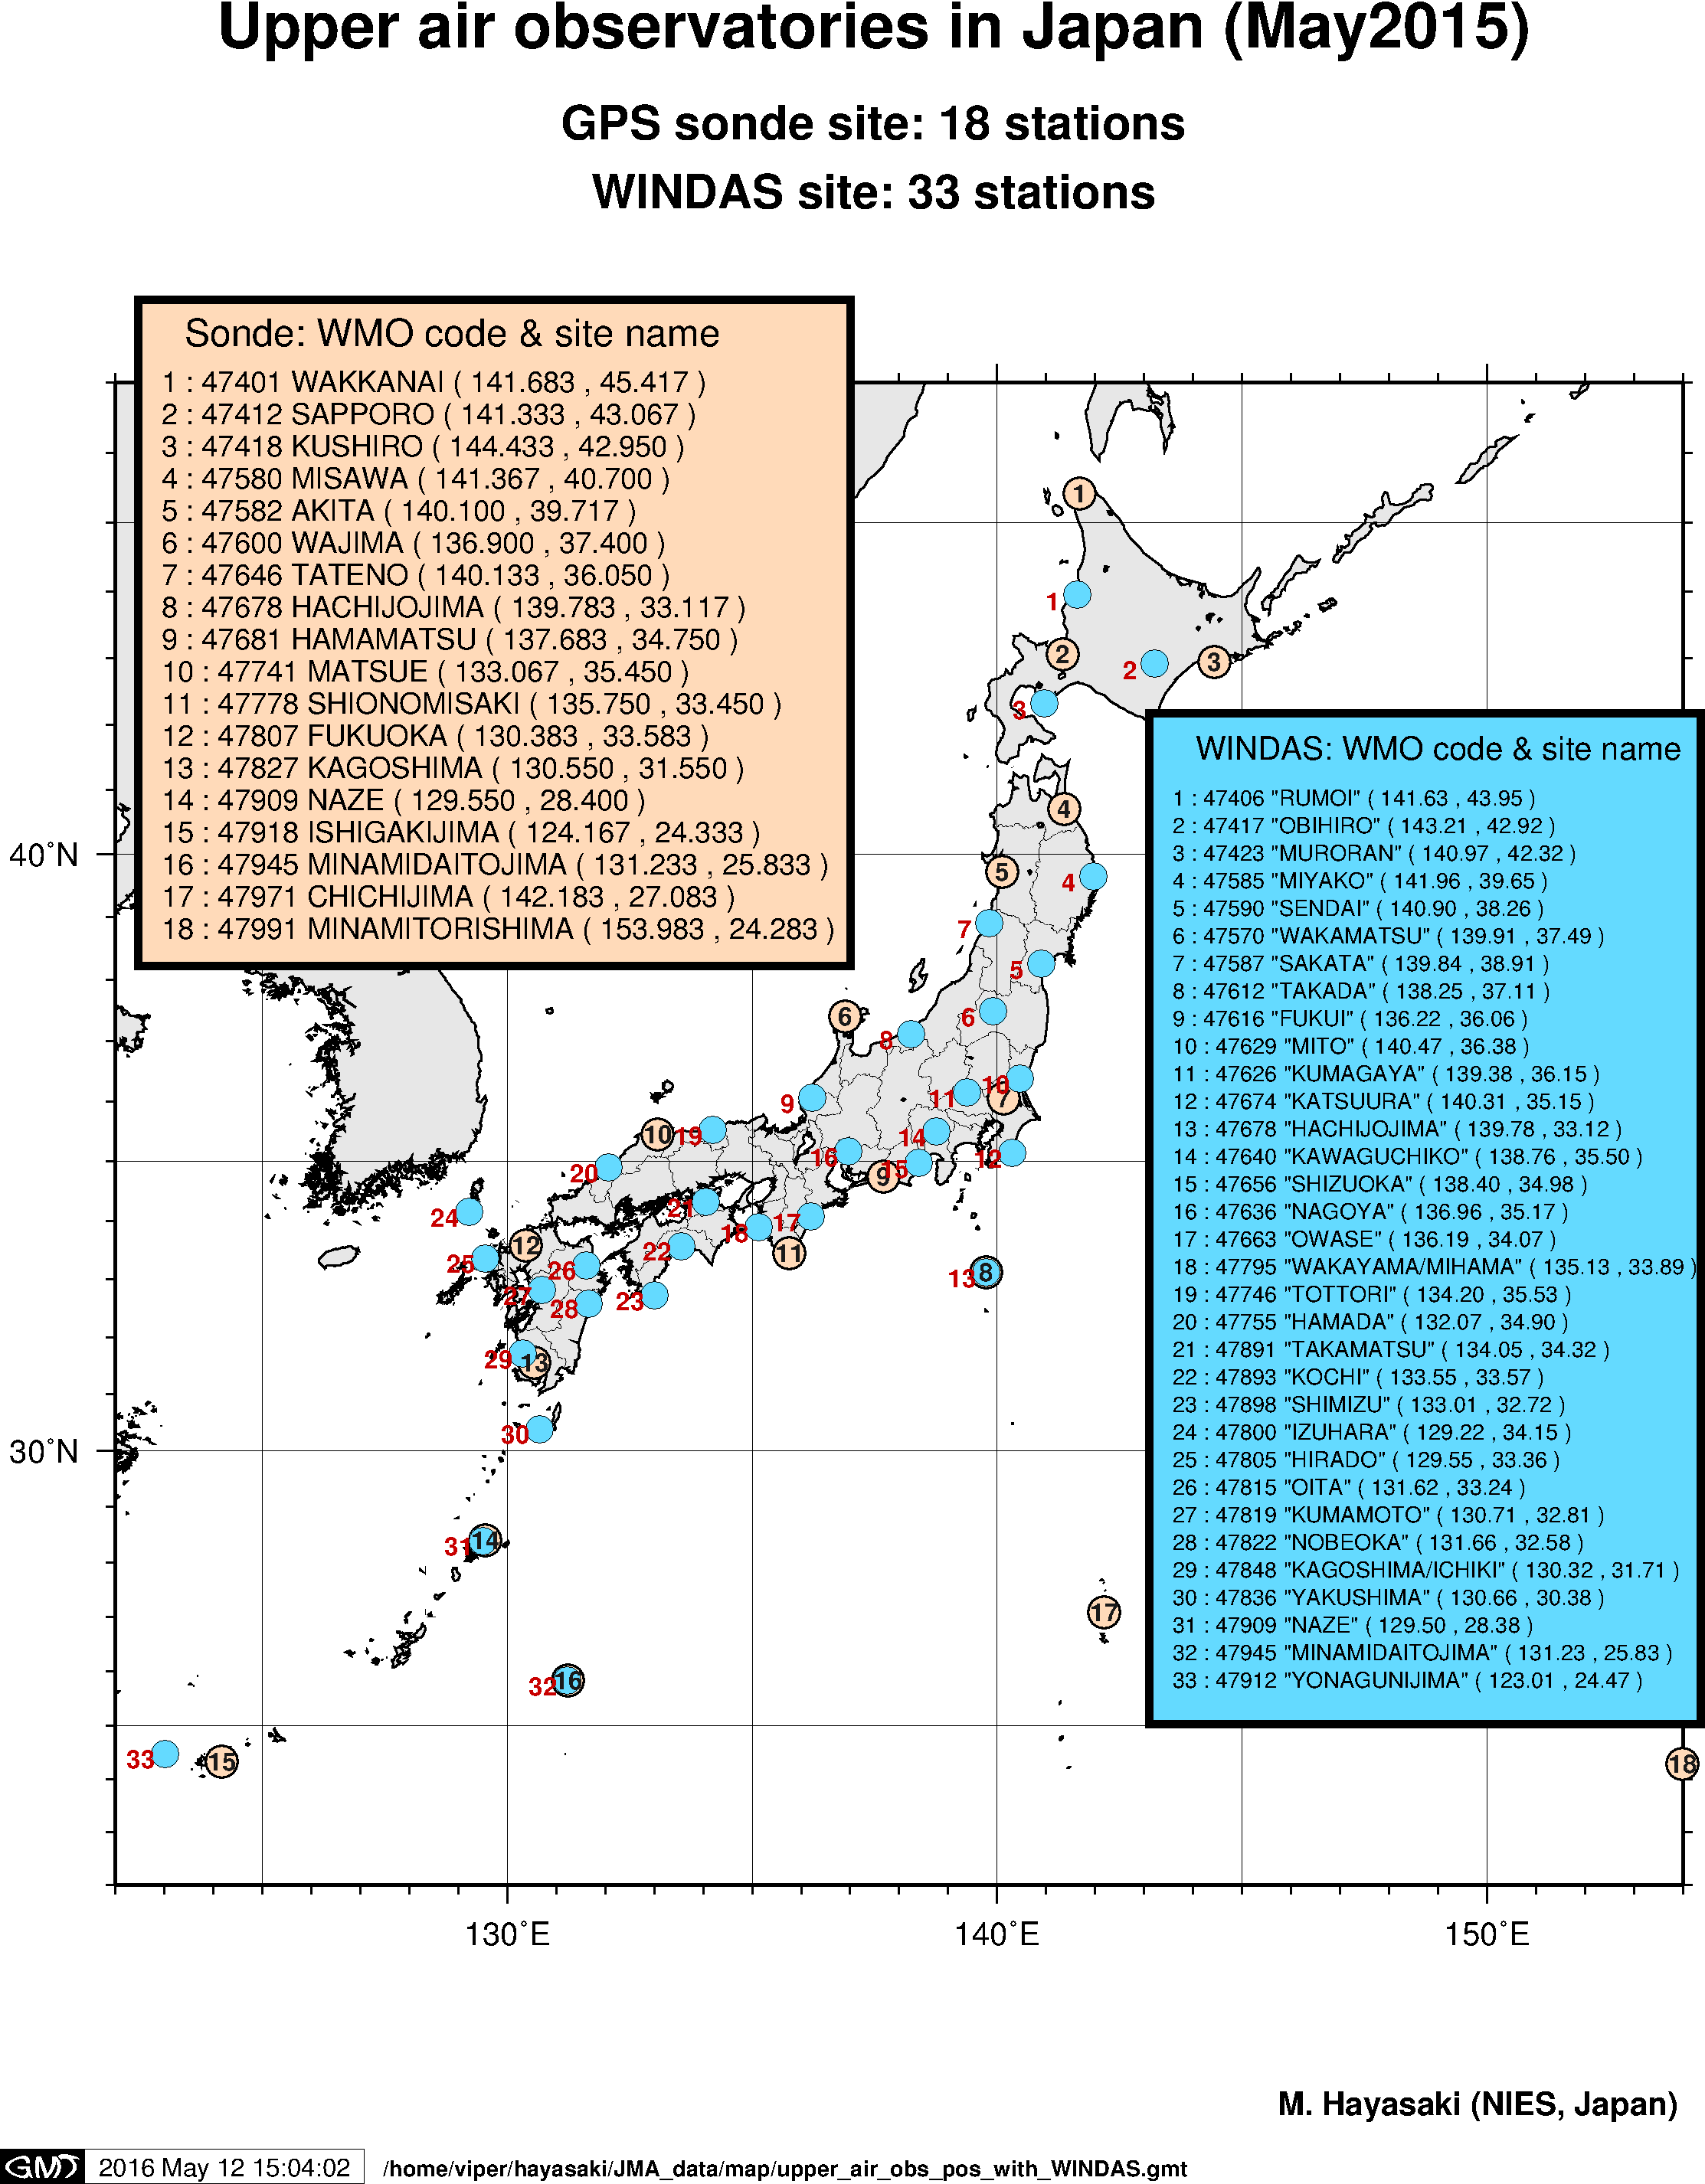 upper air sounding and WINDAS sites in Japan